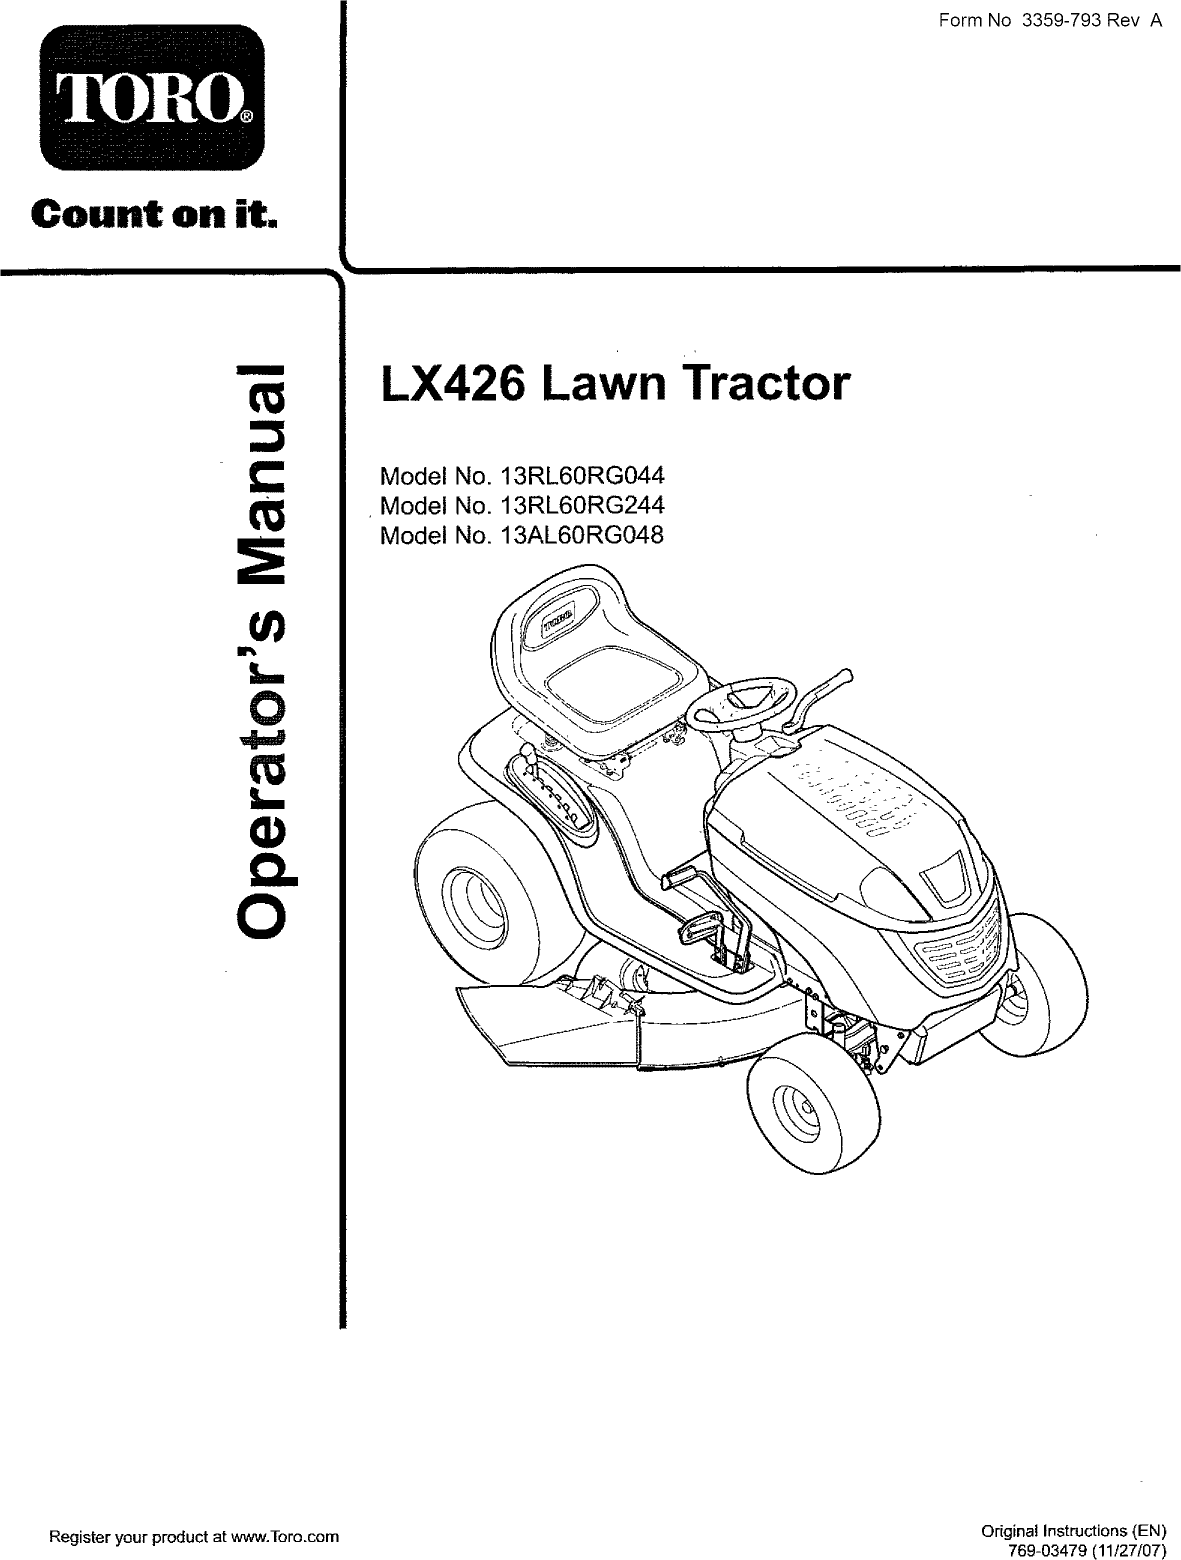 Toro 13AL60RG044 (1L107H10100 AND UP) User Manual LAWN